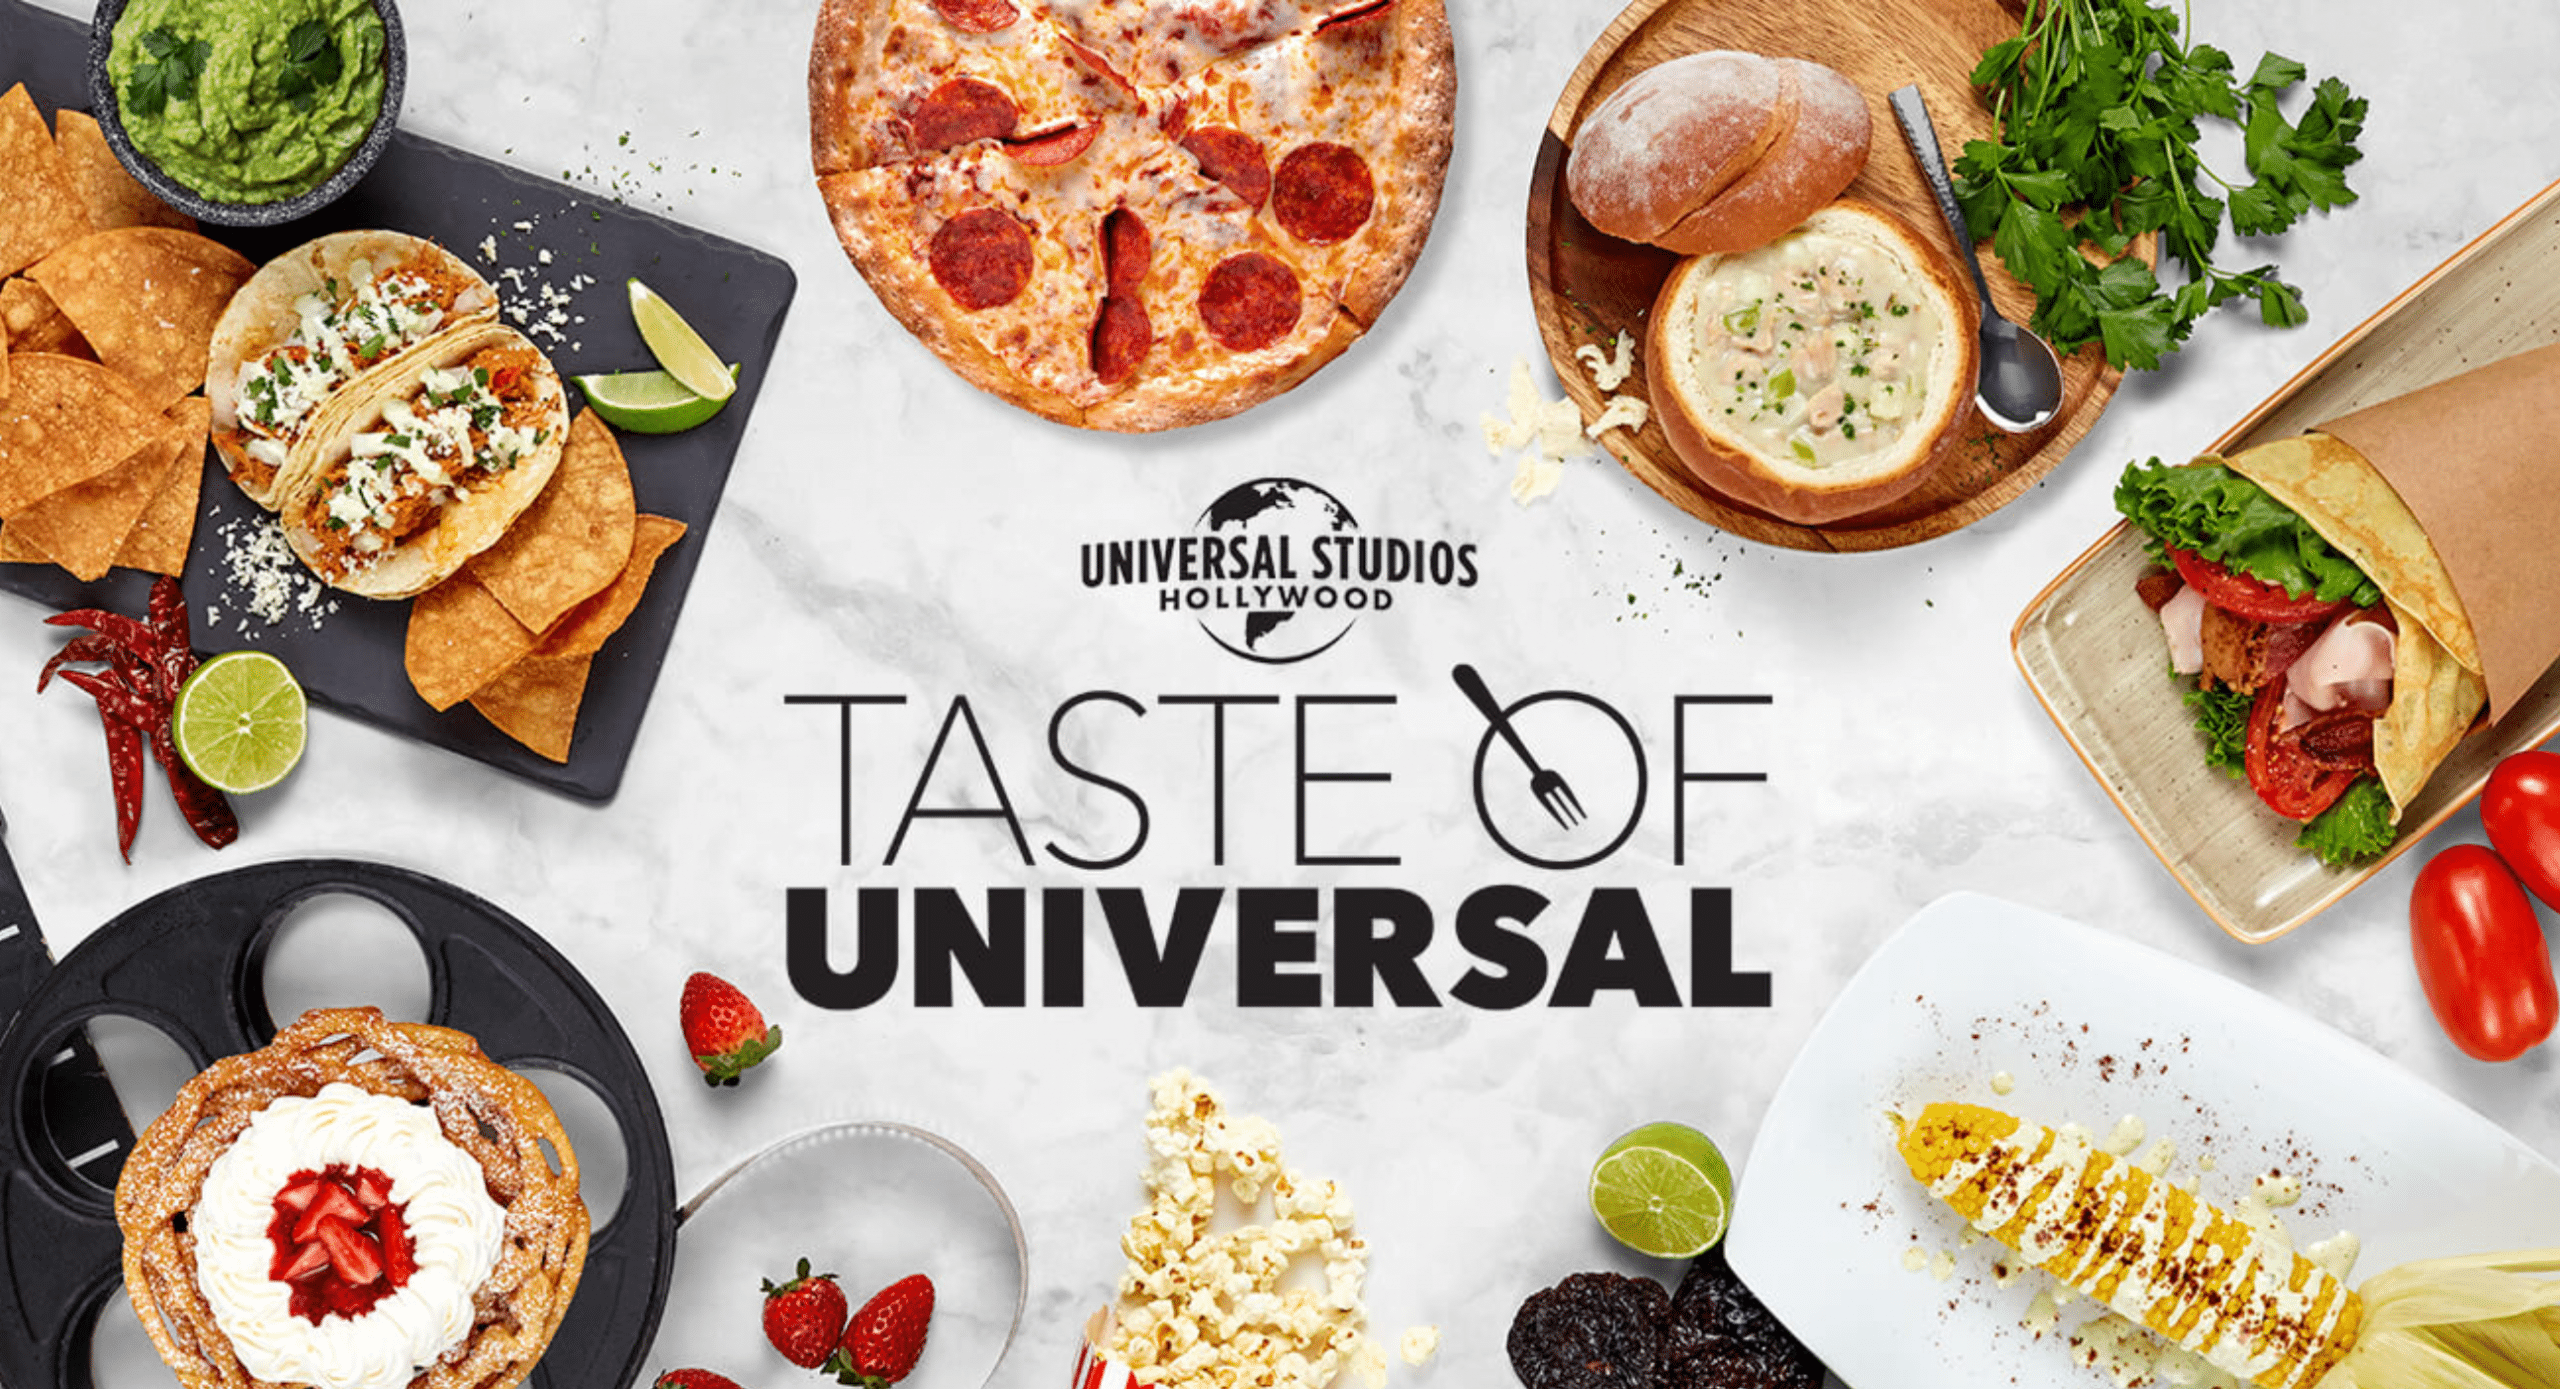 Universal Copies Disney, Opens For Food Tasting Event